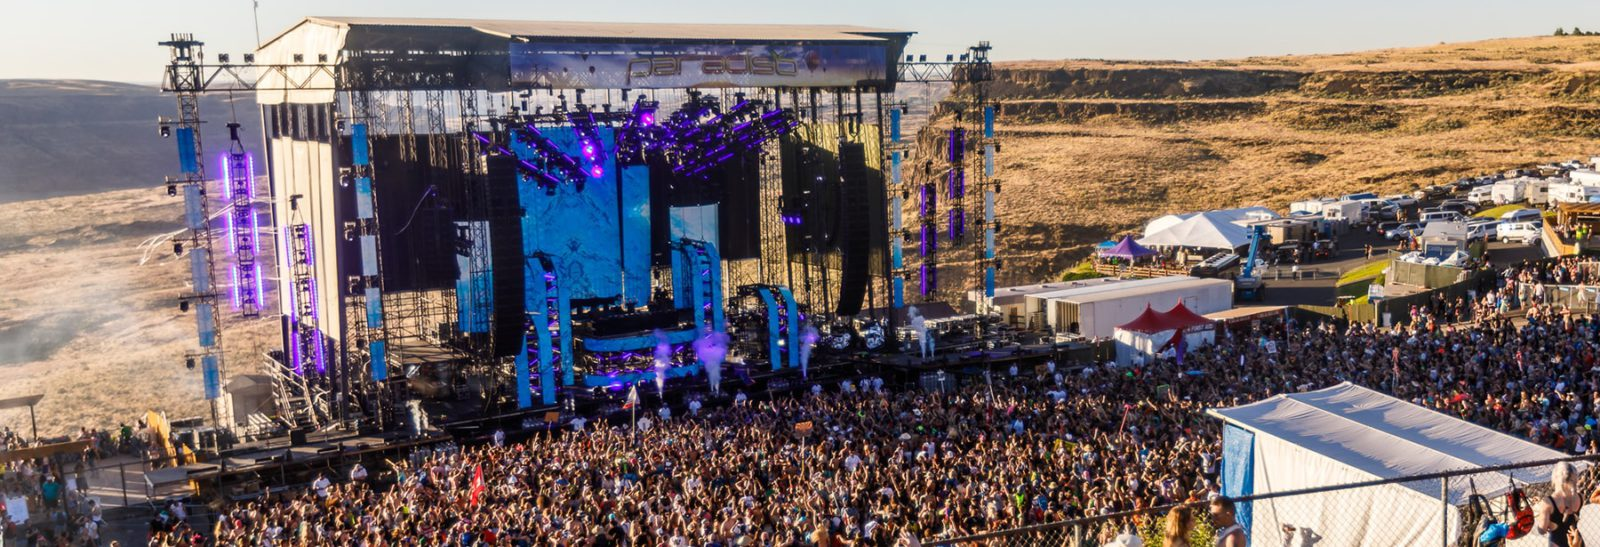 Paradiso music festival main stage